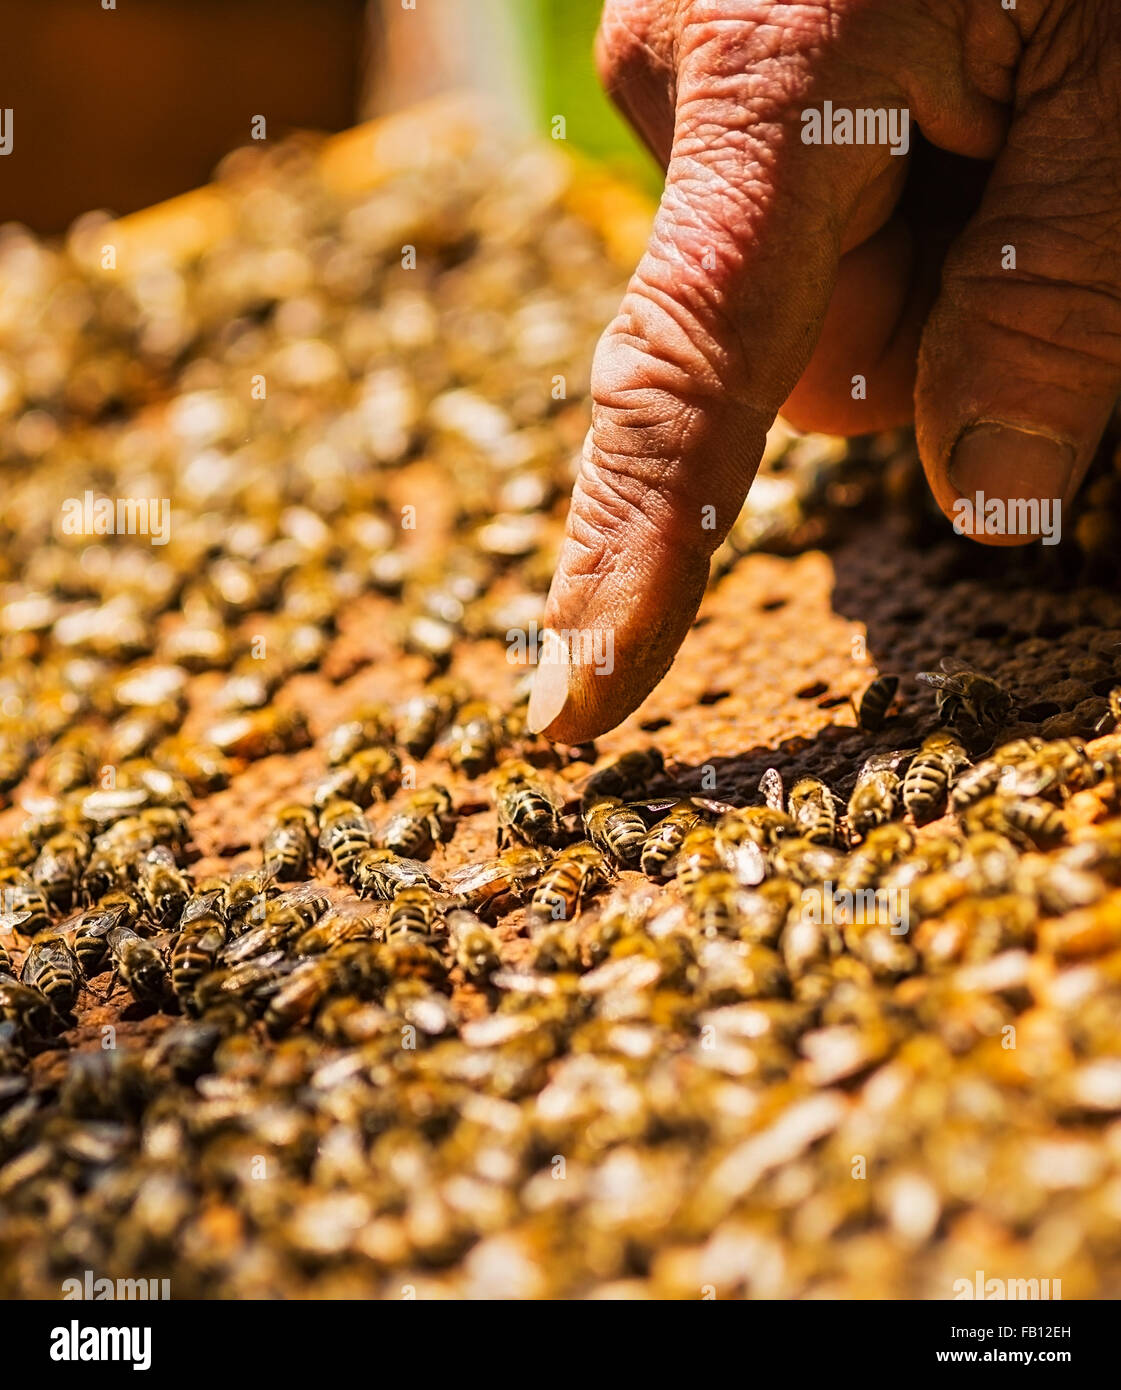 Beekeeper pointing on queen bee - Stock Image